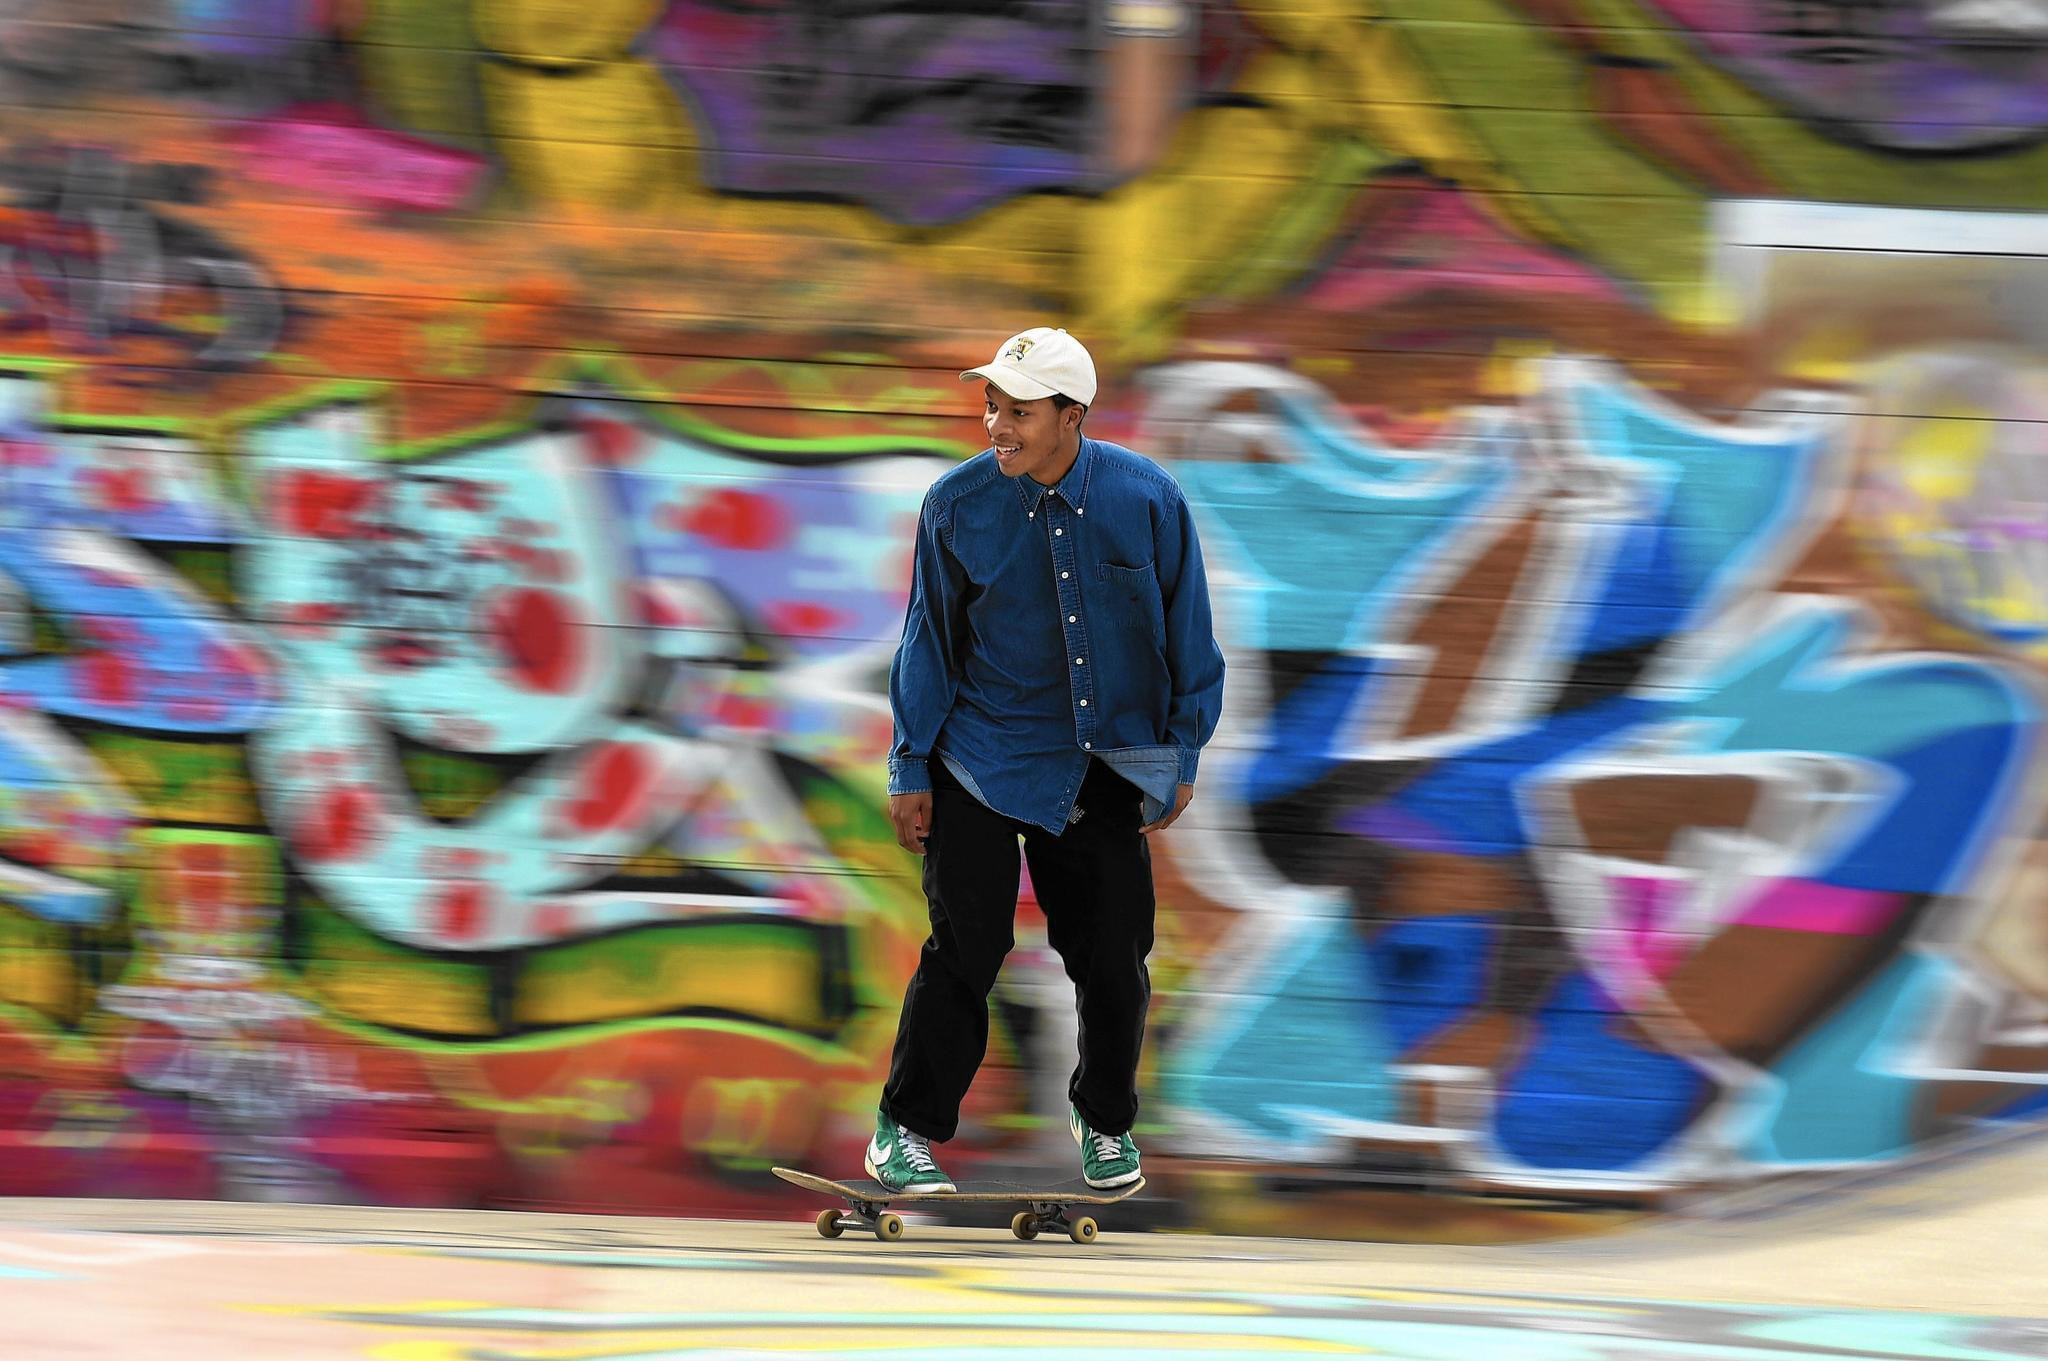 Artists to converge on hartford skate park for graffiti jam artists to converge on hartford skate park for graffiti jam makeover hartford courant thecheapjerseys Gallery